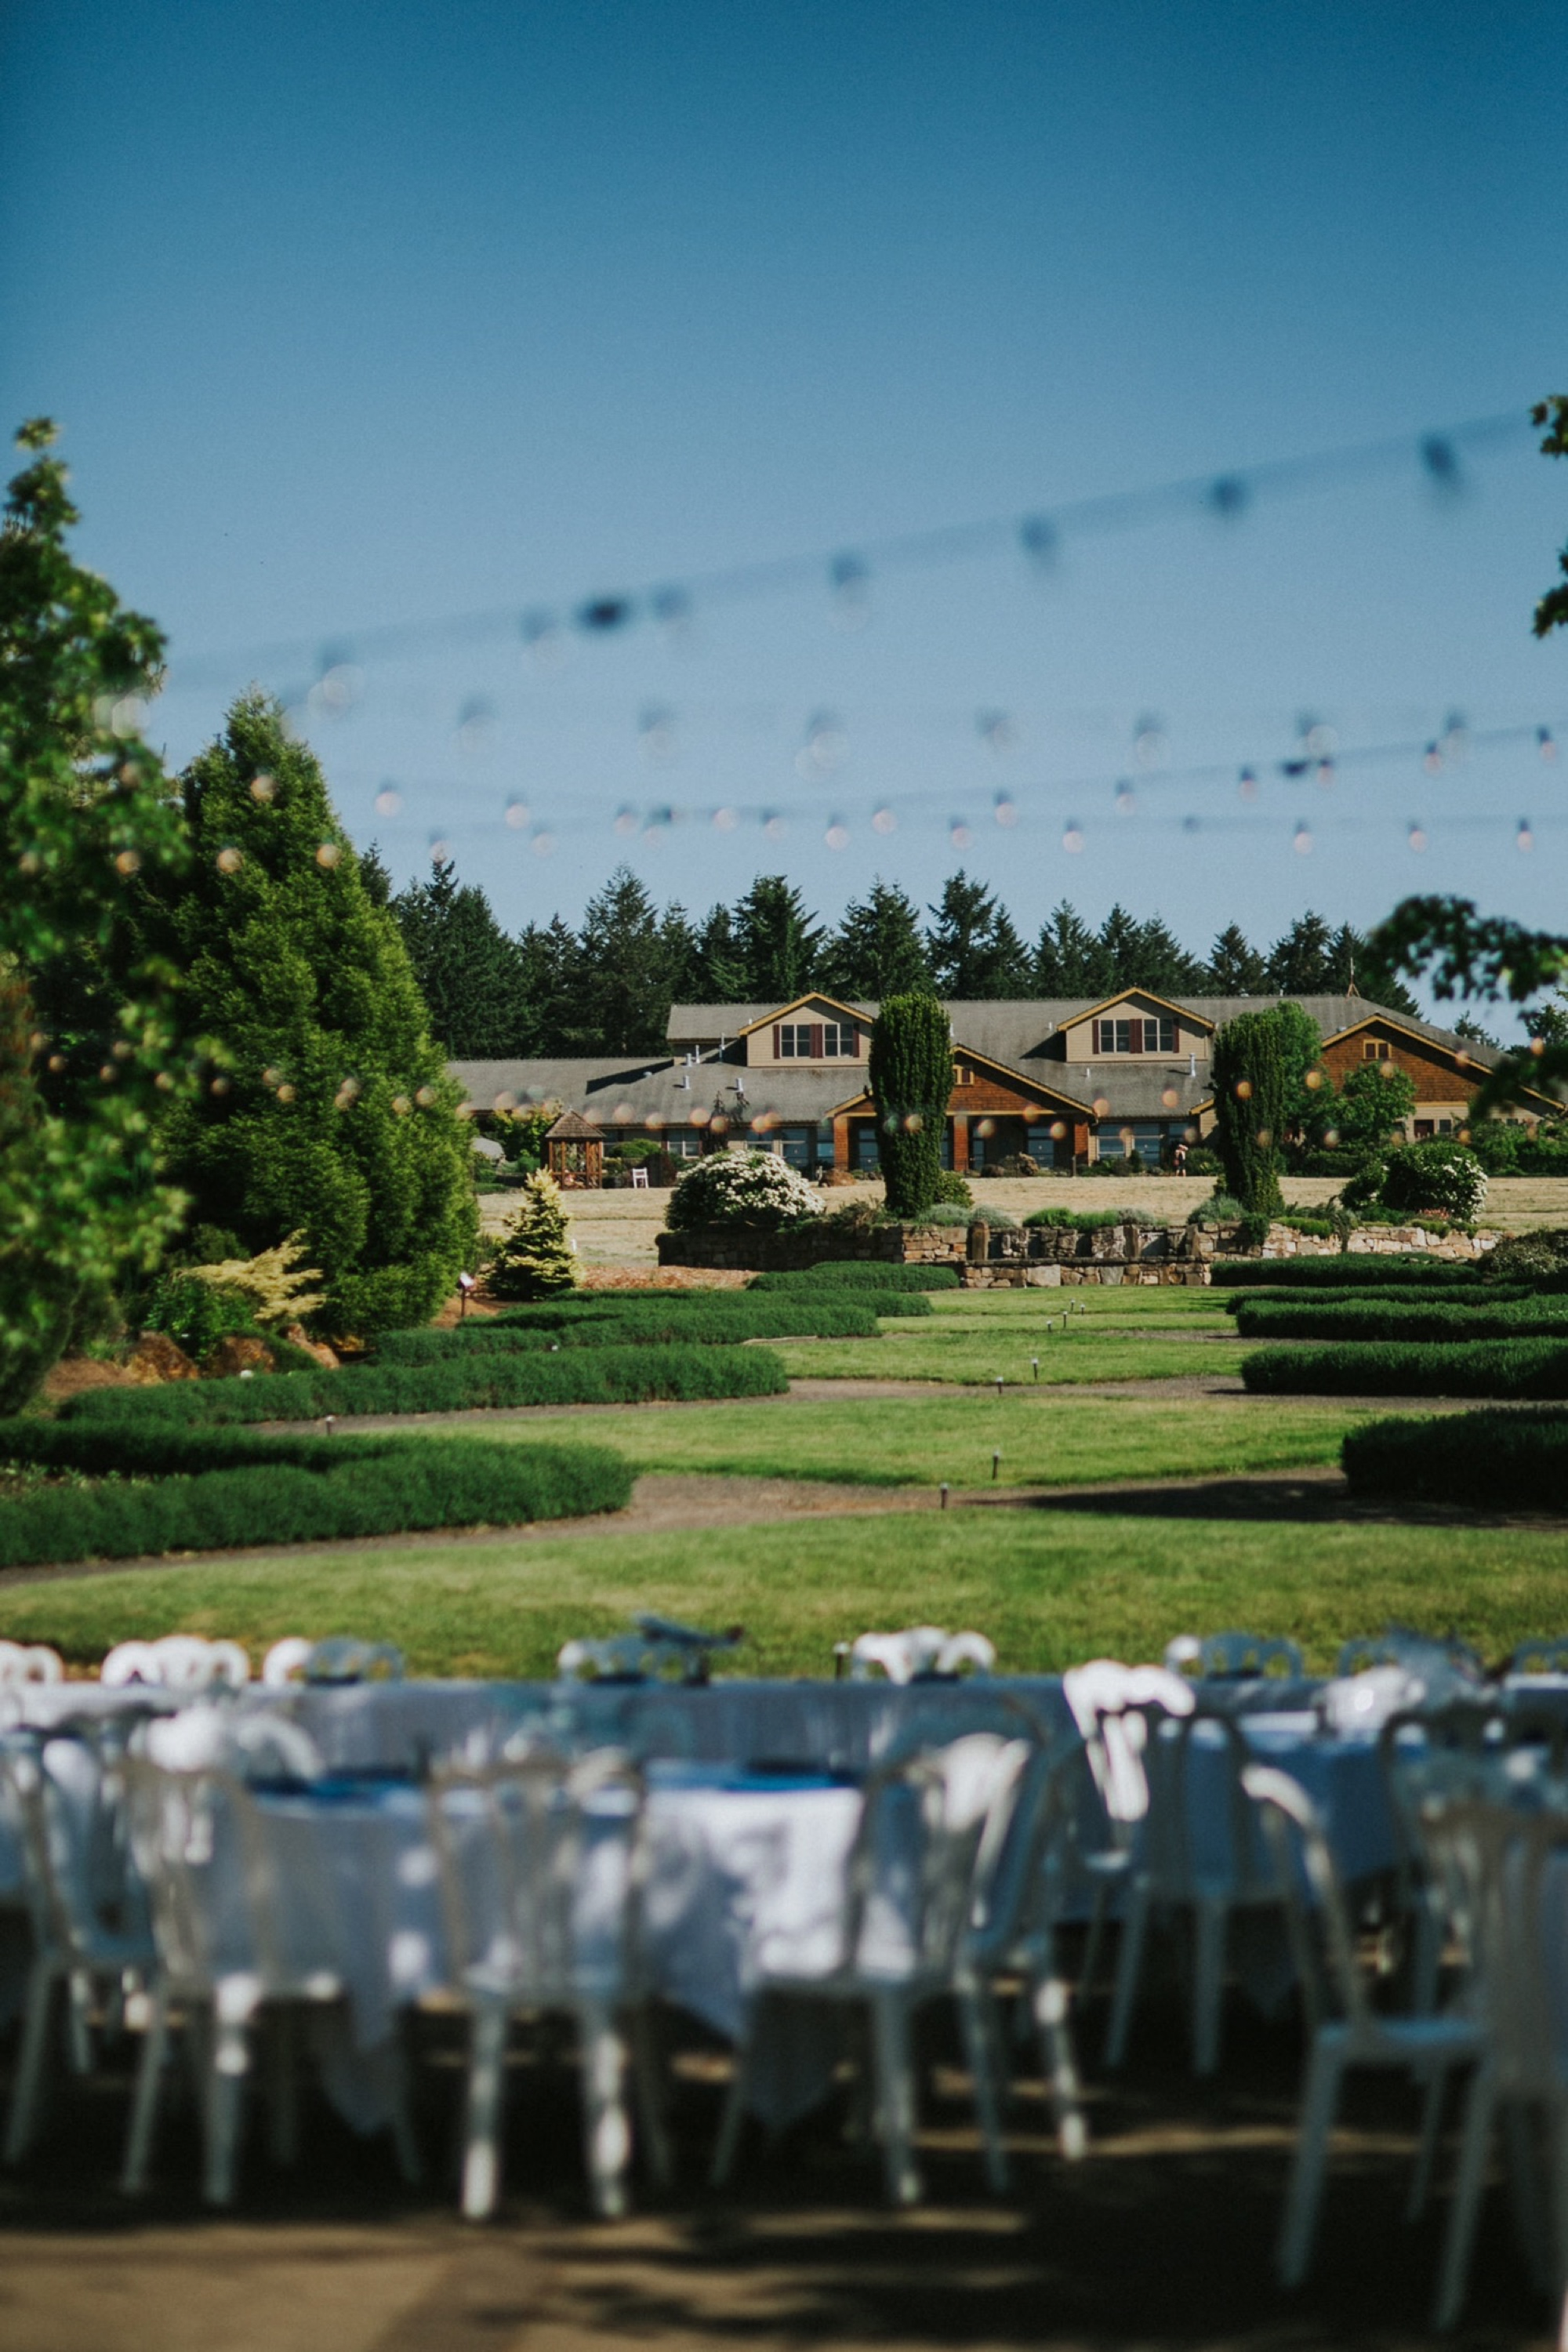 Daniel and Jeremy had a truly enchanting and magical wedding at  The Oregon Garden Resort  in Silverton, Oregon. It was truly beyond stunning from decor to scenery to each beautiful moment throughout the entire day. Along with the fabulous scenery including all of the greenery and fresh florals in bloom, the decor and theme Daniel and Jeremy chose for their special day was seriously SO COOL. Daniel and Jeremy are both flight attendants so the theme for their big day was travel (and of course, airplanes!). The blue tones and travel themed decor was the perfect mix of elegance and quirk.